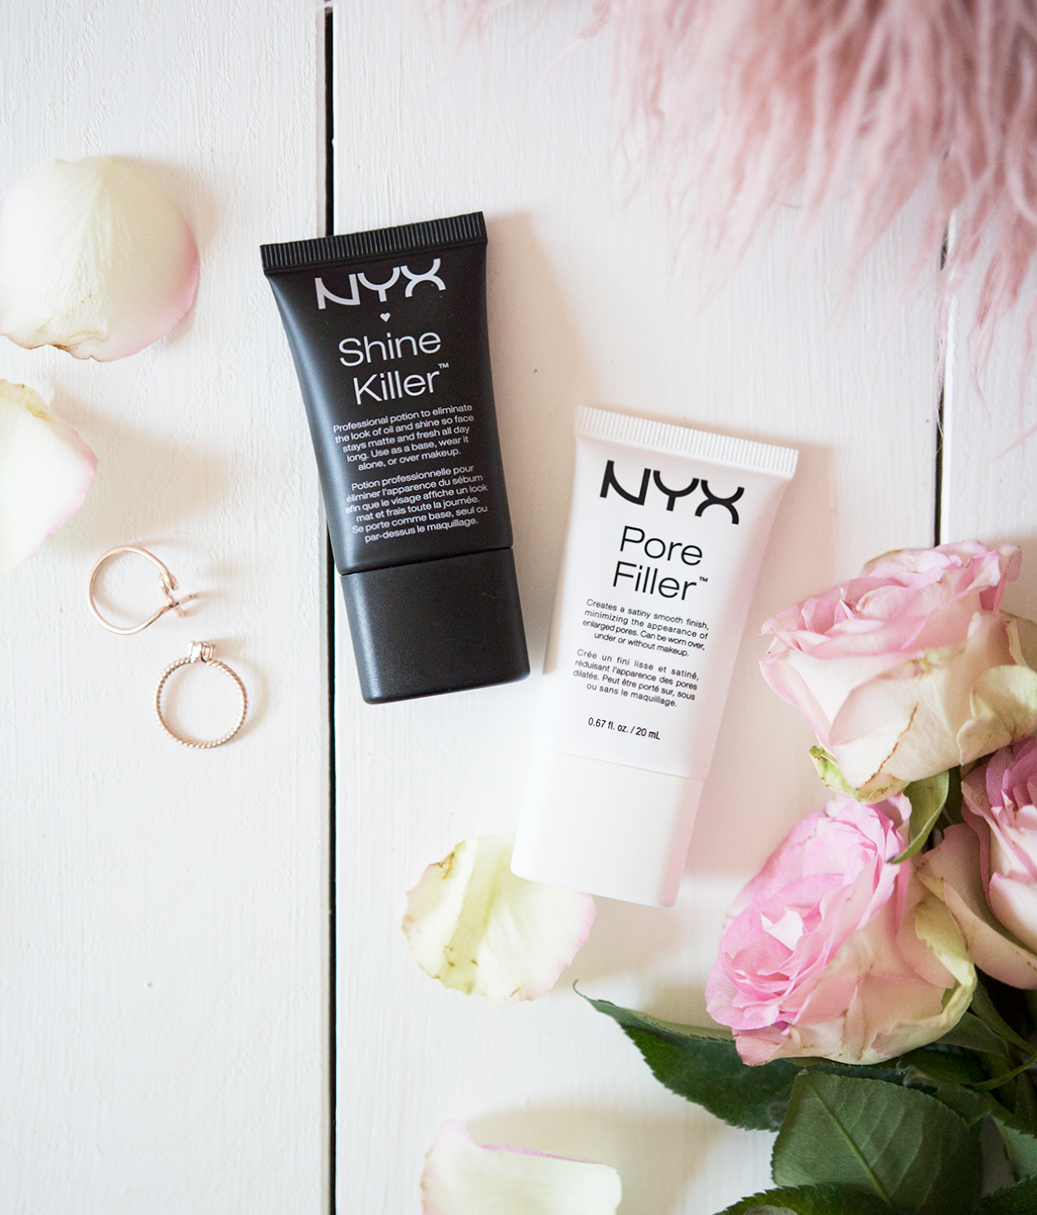 nyx pore filler and shine killer review